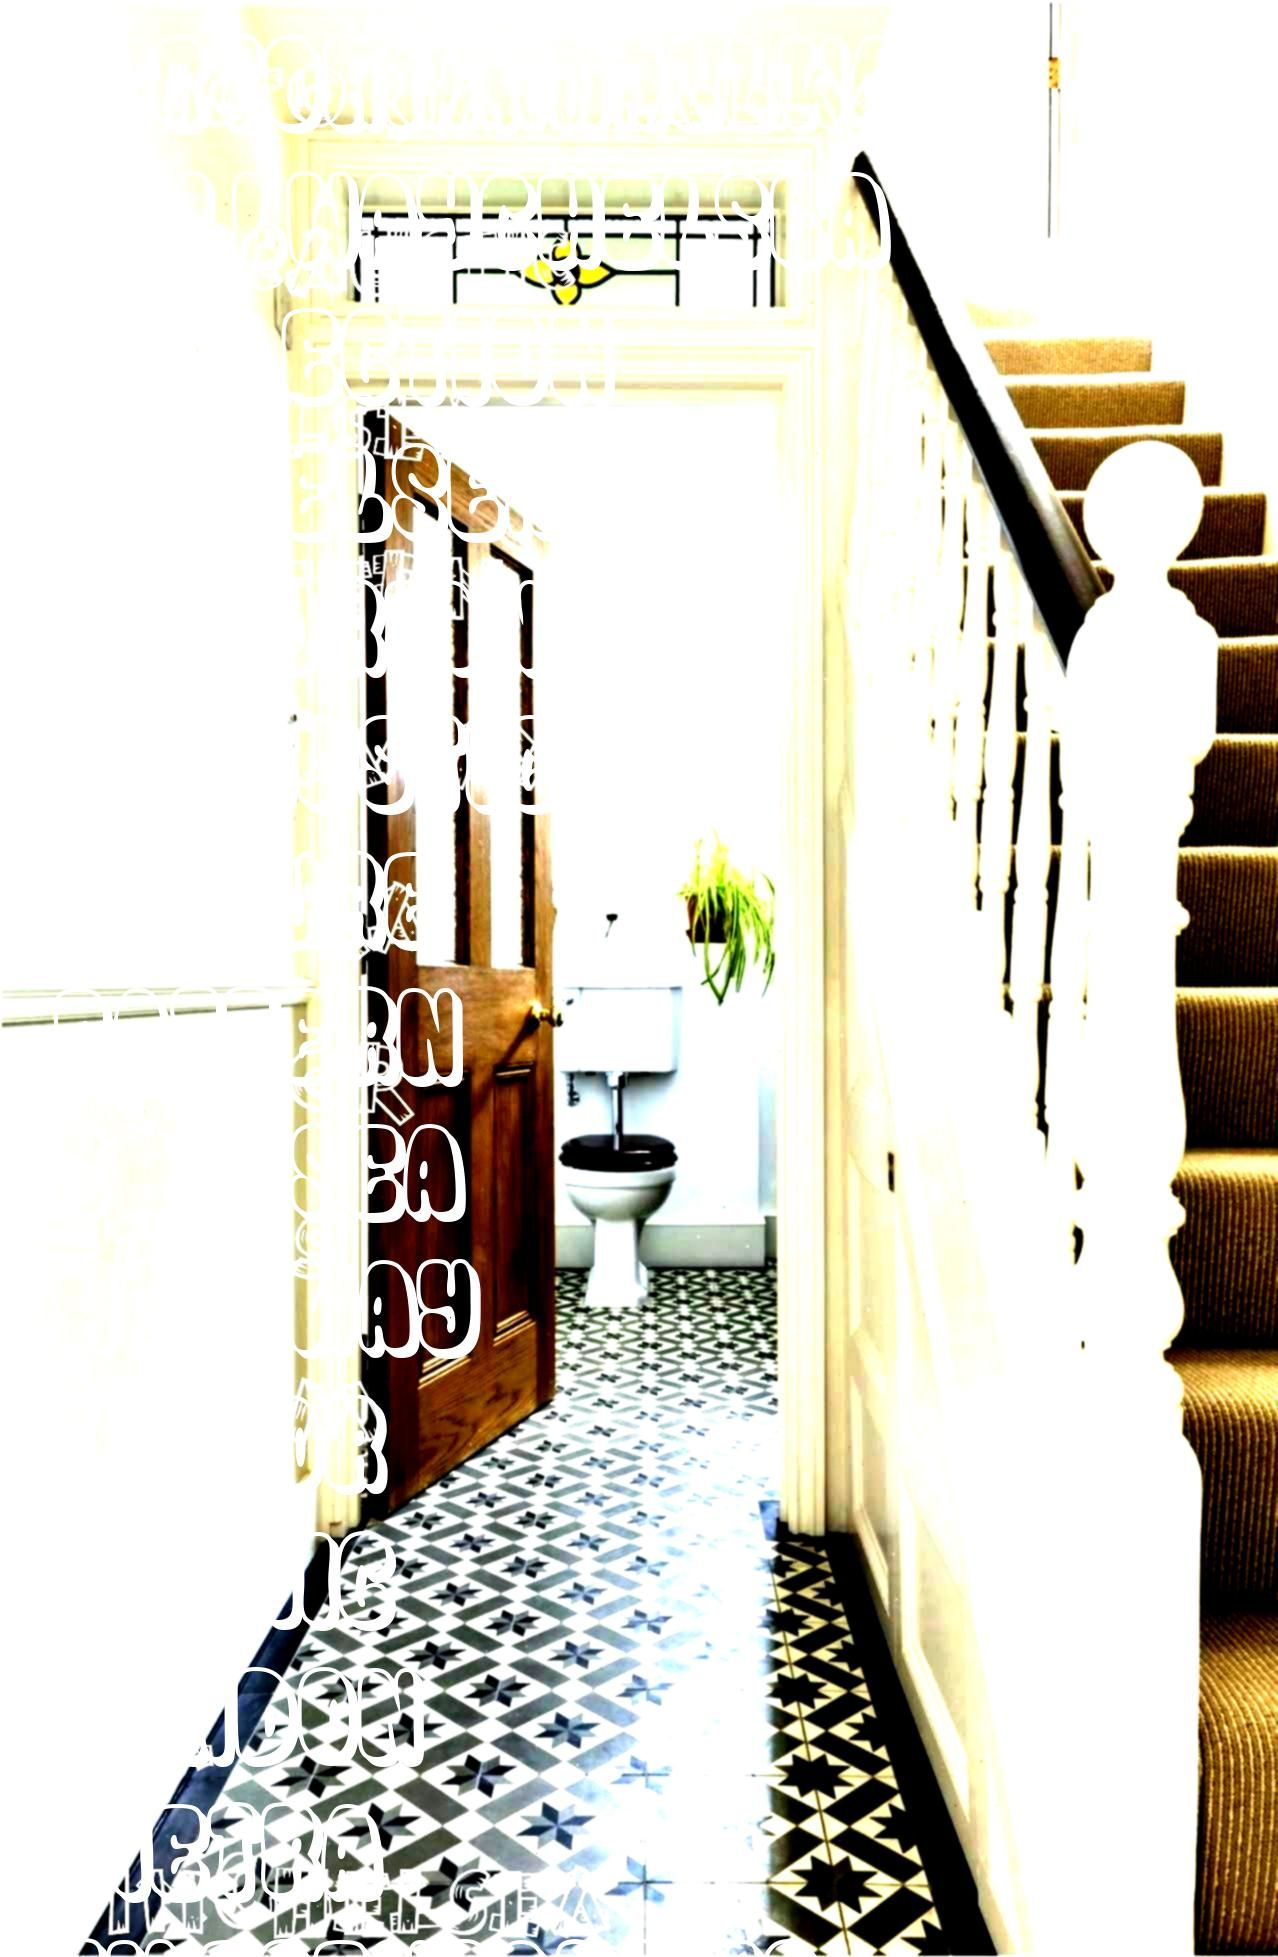 tiles from Ca Pietra Pattern tiles in the hallway Chelsea encaustic tiles from Ca Pietra Pattern tiles in the hallwayChelsea encaustic tiles from Ca Pietra Pattern tiles...